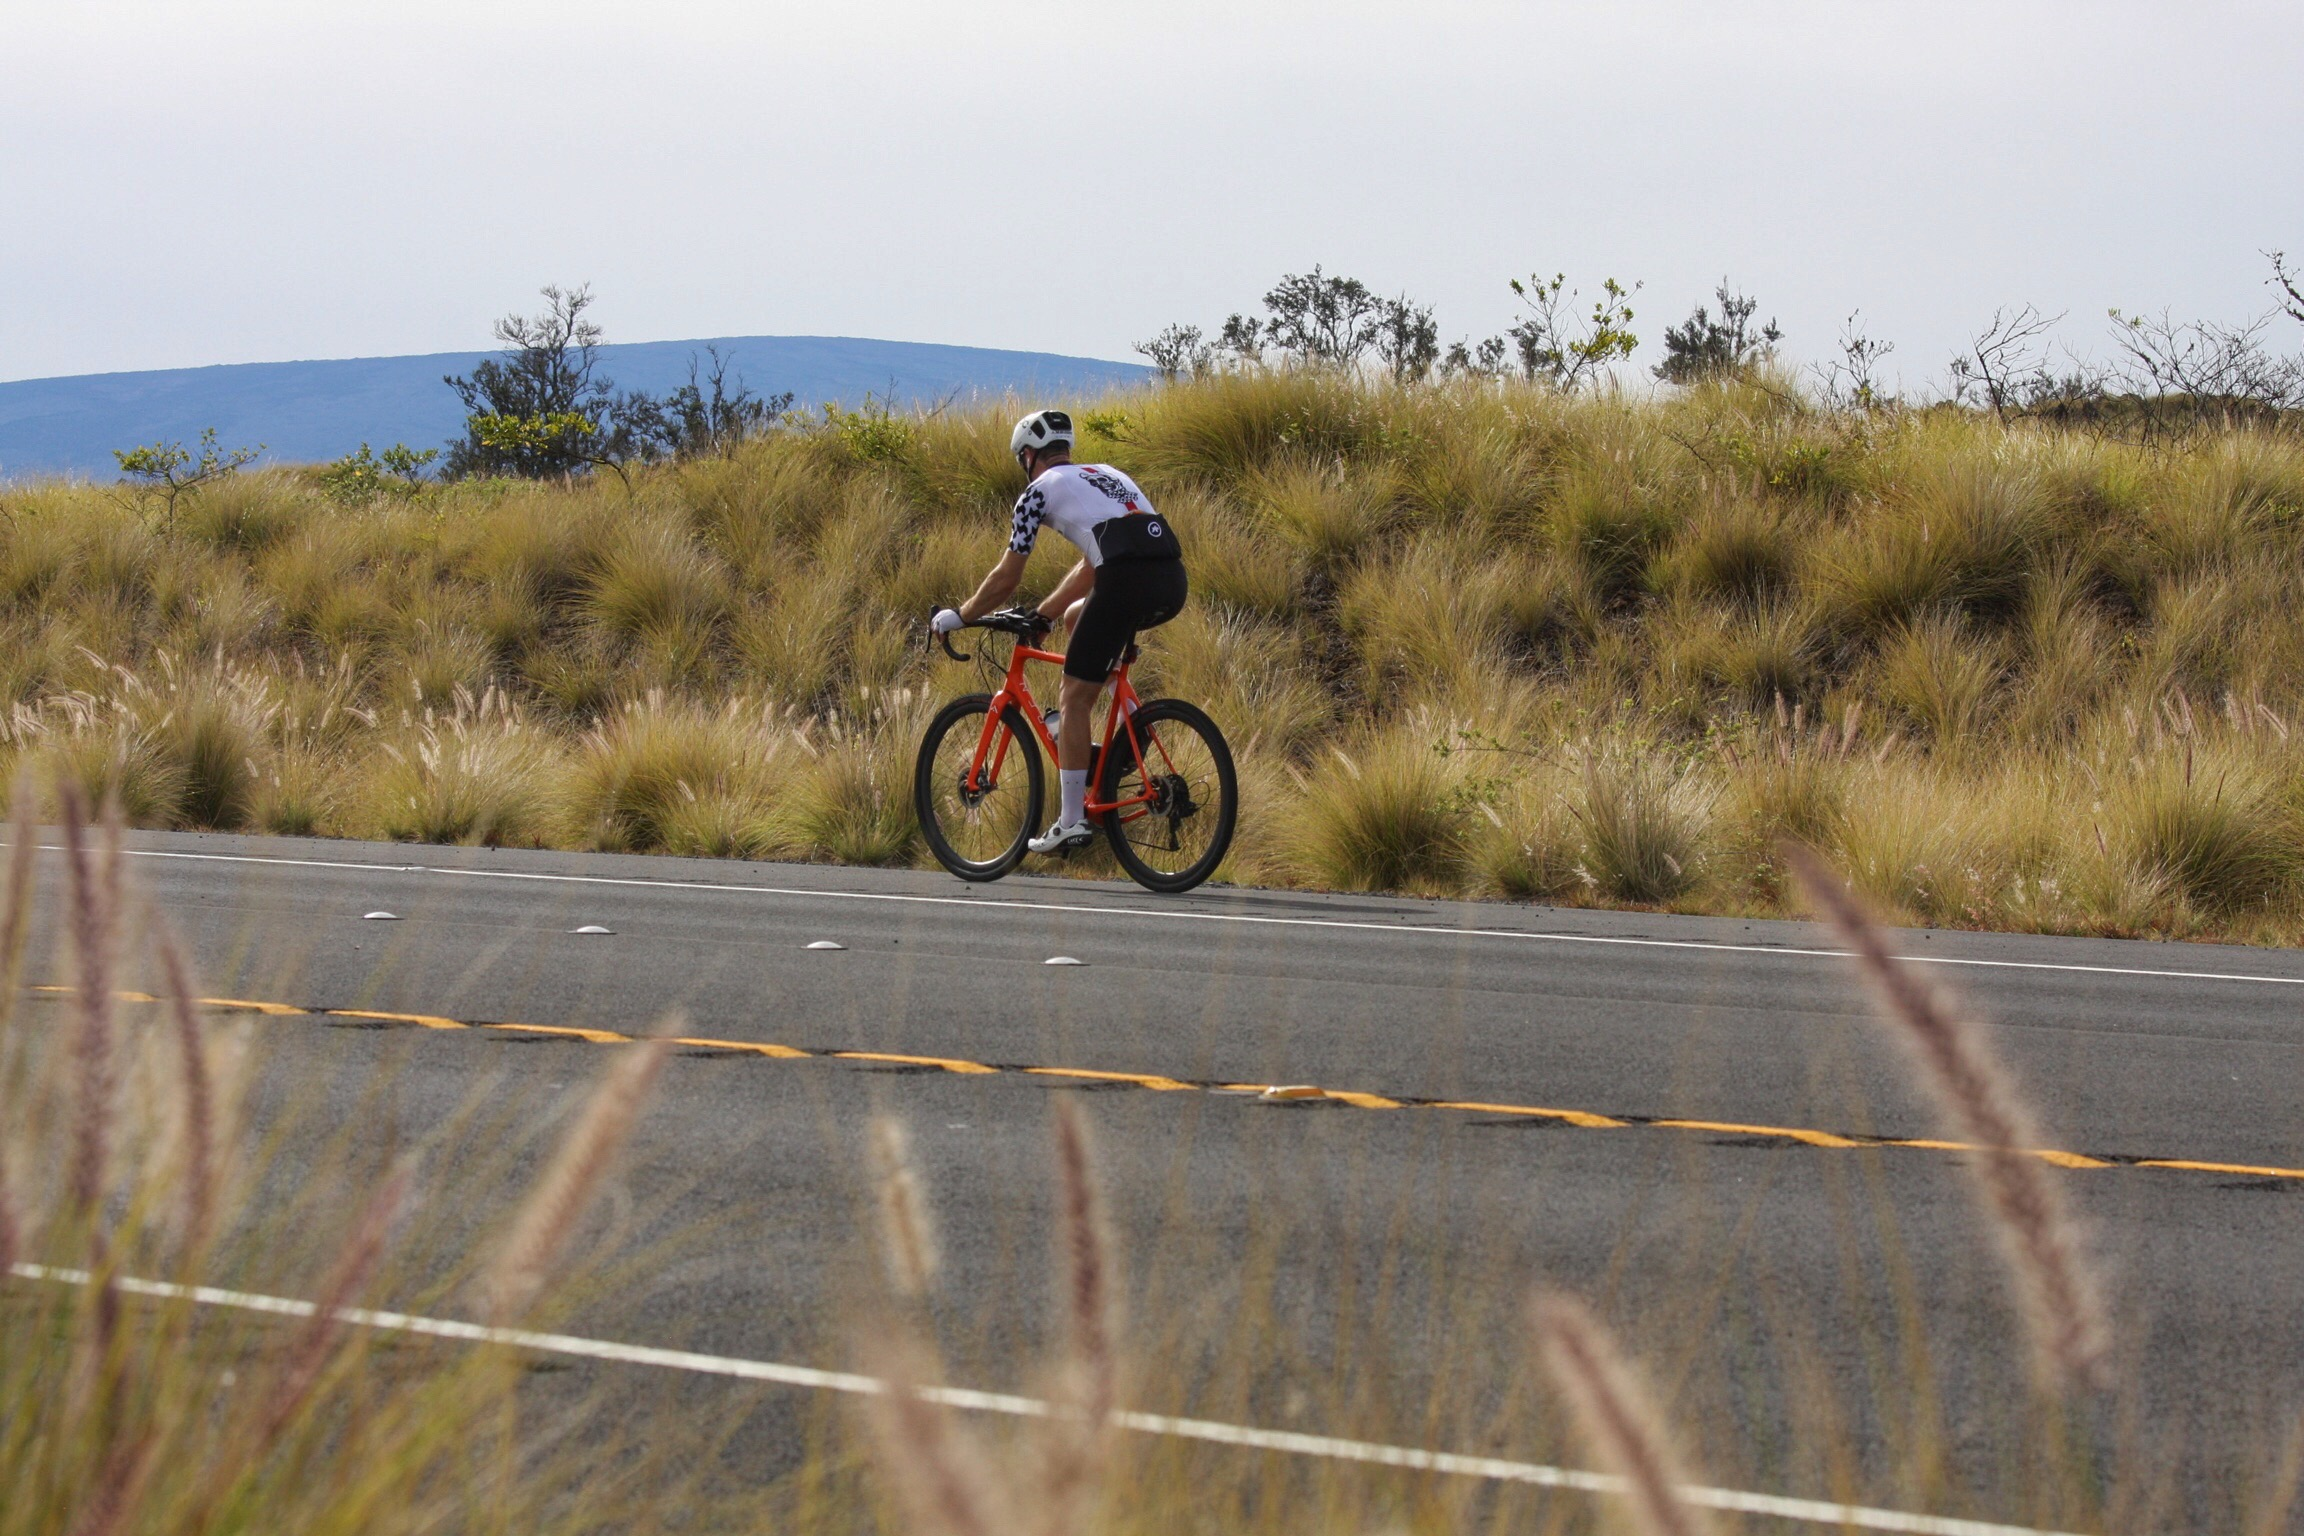 Less than an hour into the ride, on the Waikoloa Road, fighting a strong headwind. Mauna Loa looms in the background.